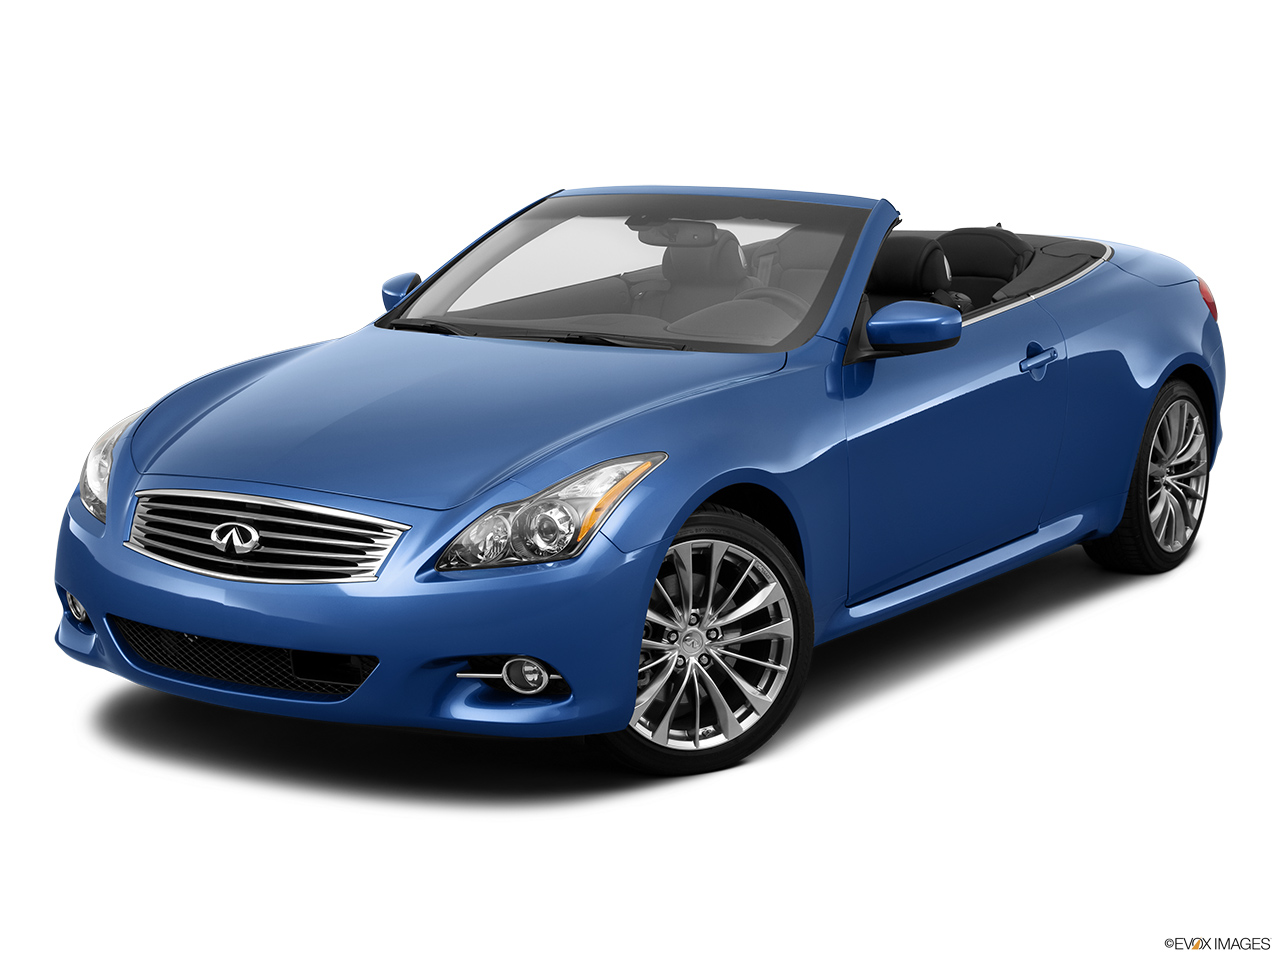 2013 infiniti g37 convertible 2 door base. Black Bedroom Furniture Sets. Home Design Ideas